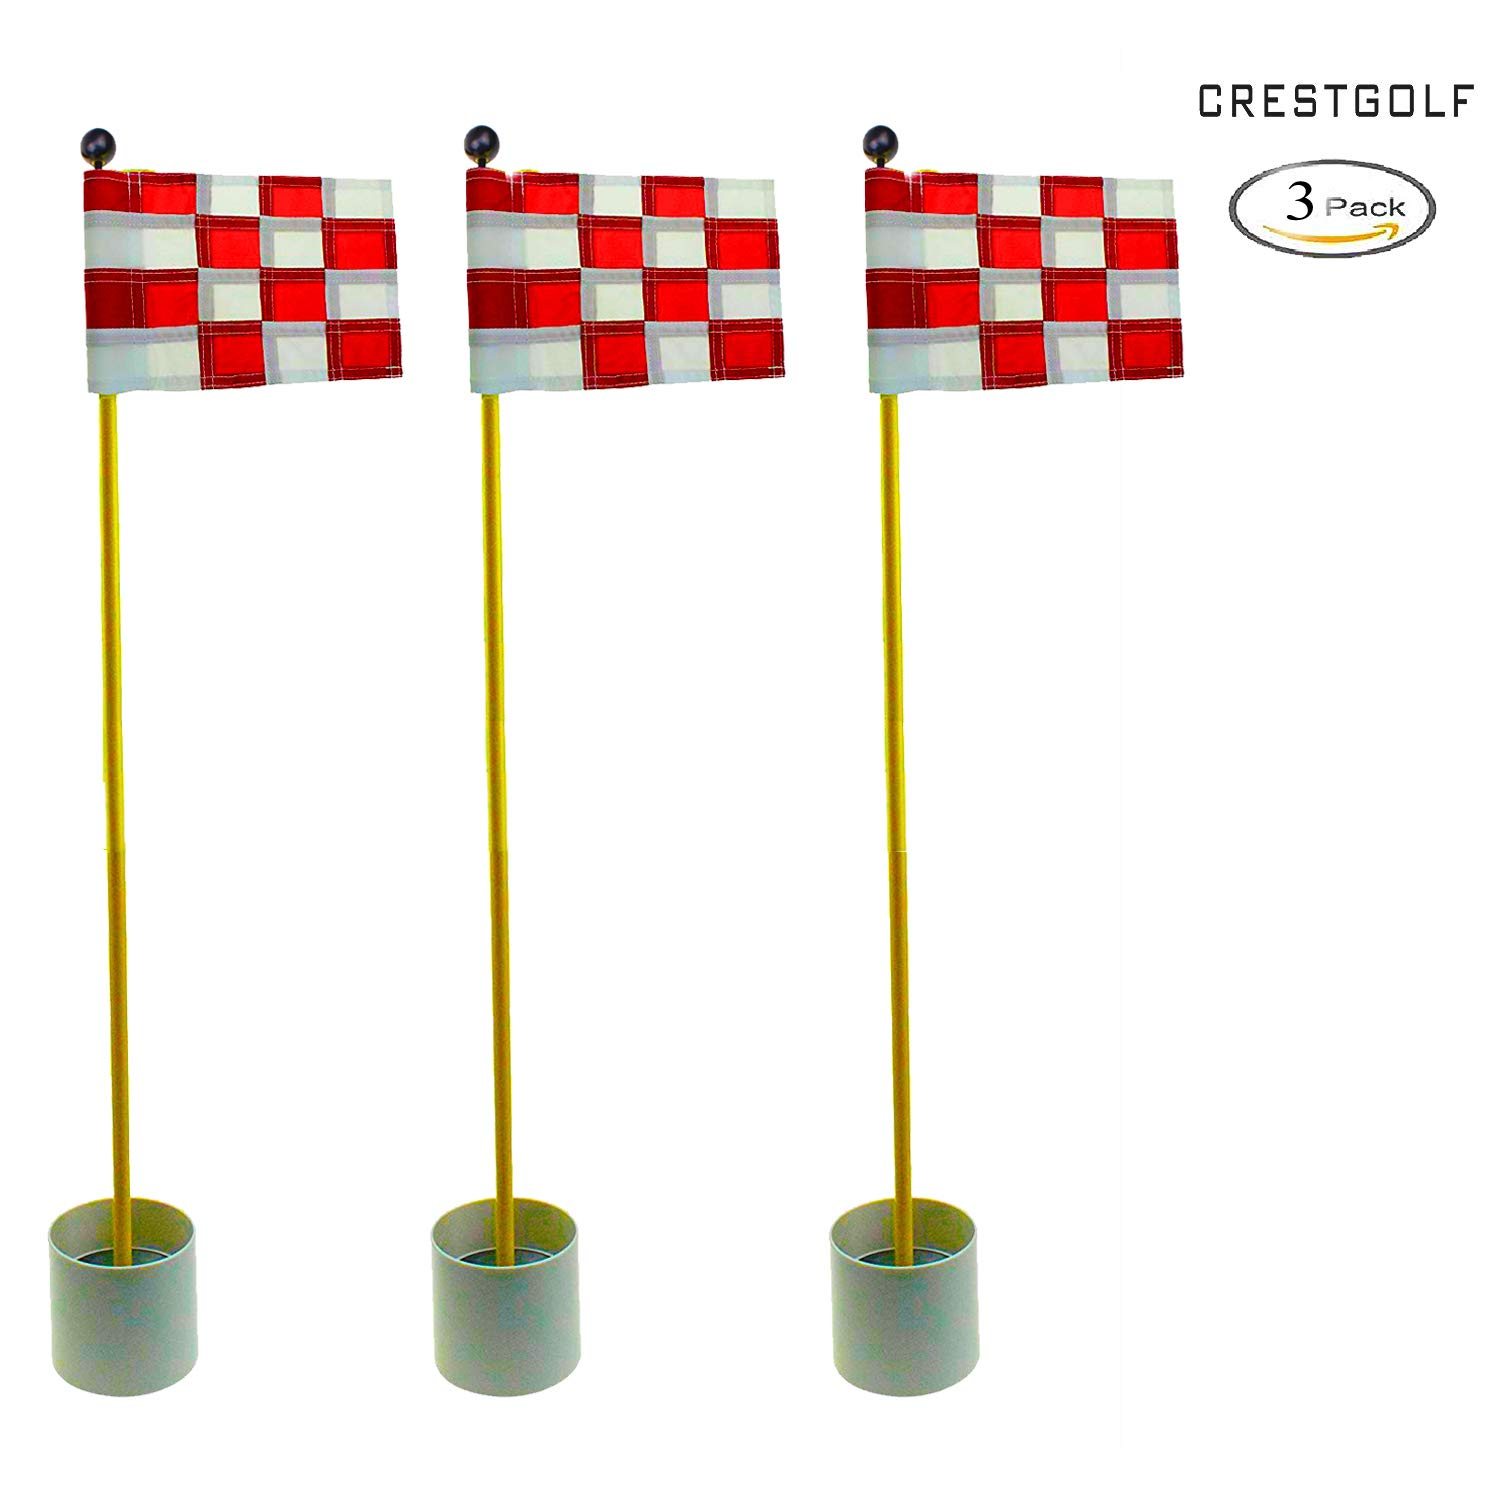 CRESTGOLF 3Sets Backyard Practice Golf Hole Pole Cup Flag Stick, 3 Section,Golf Putting Green Flagstick (white-red plaid)